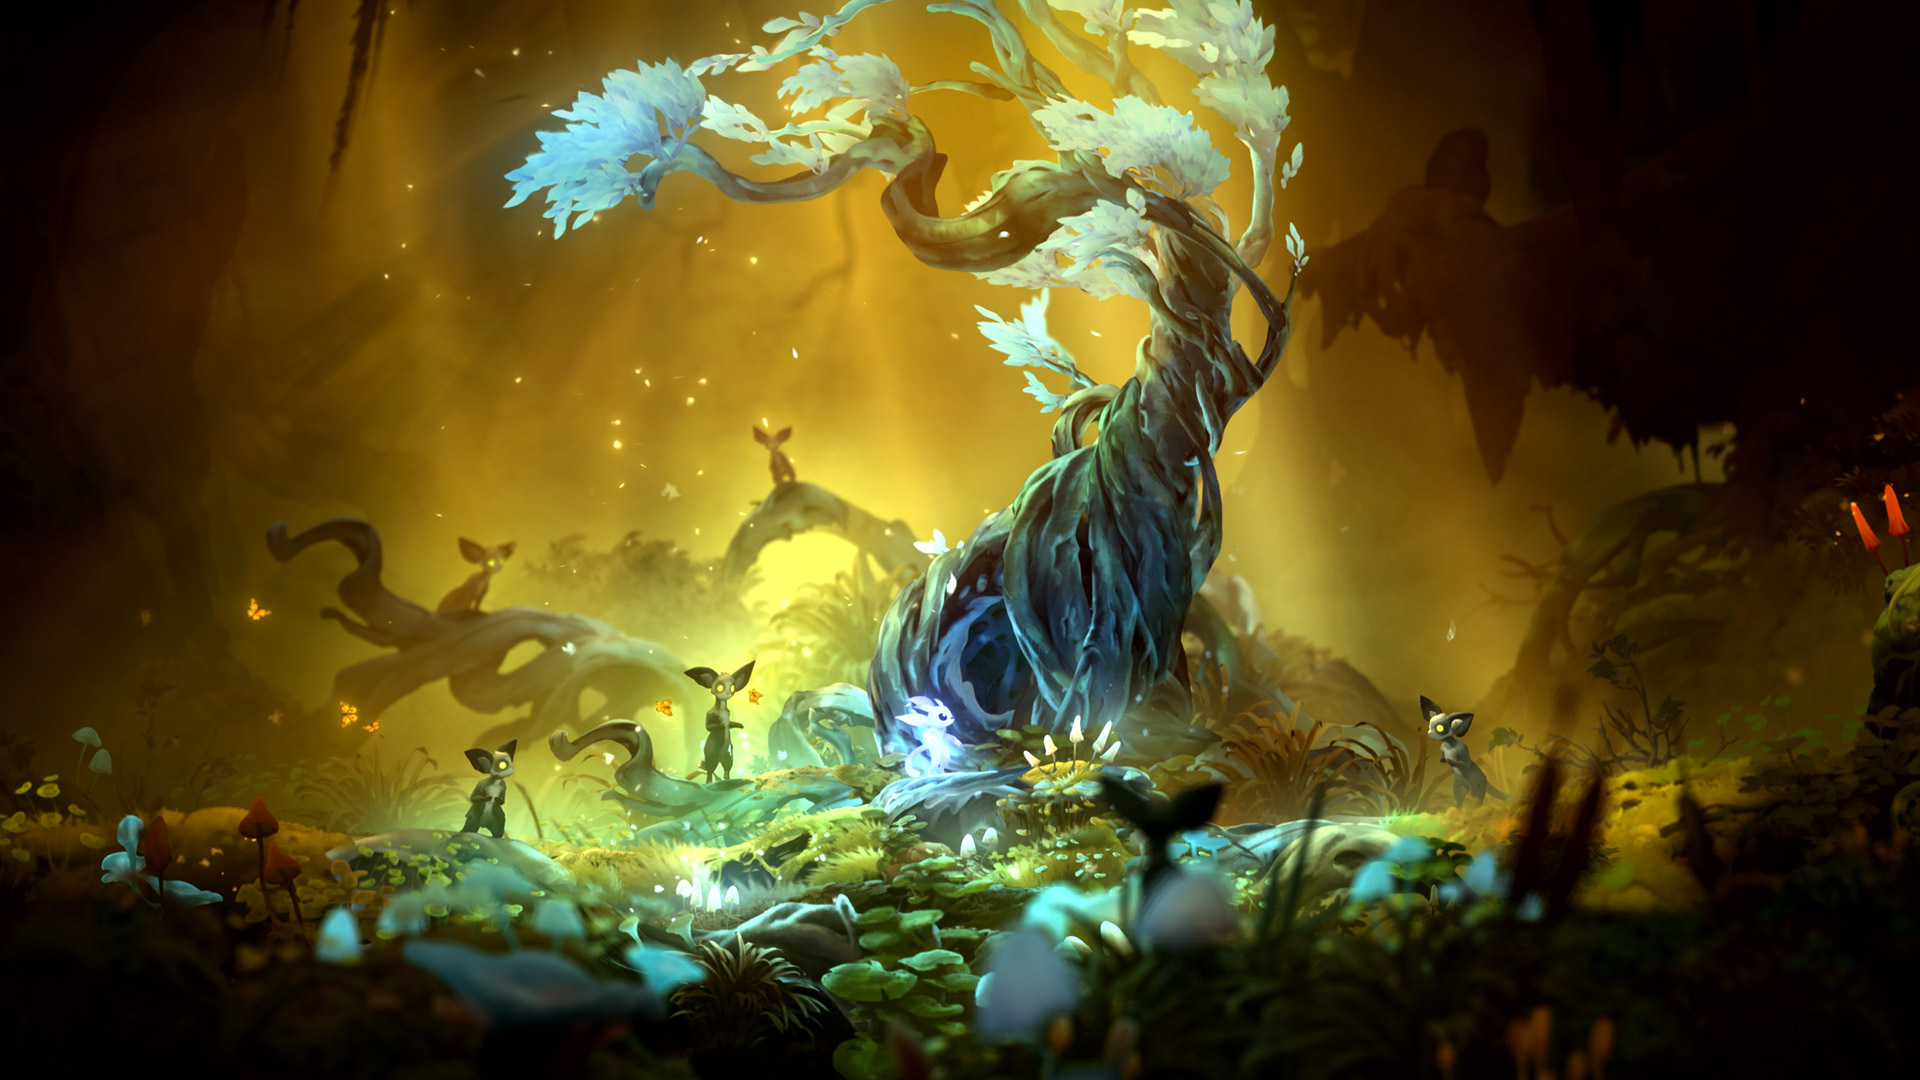 Ori and The Will of The Wisps Wallpaper in 1920x1080